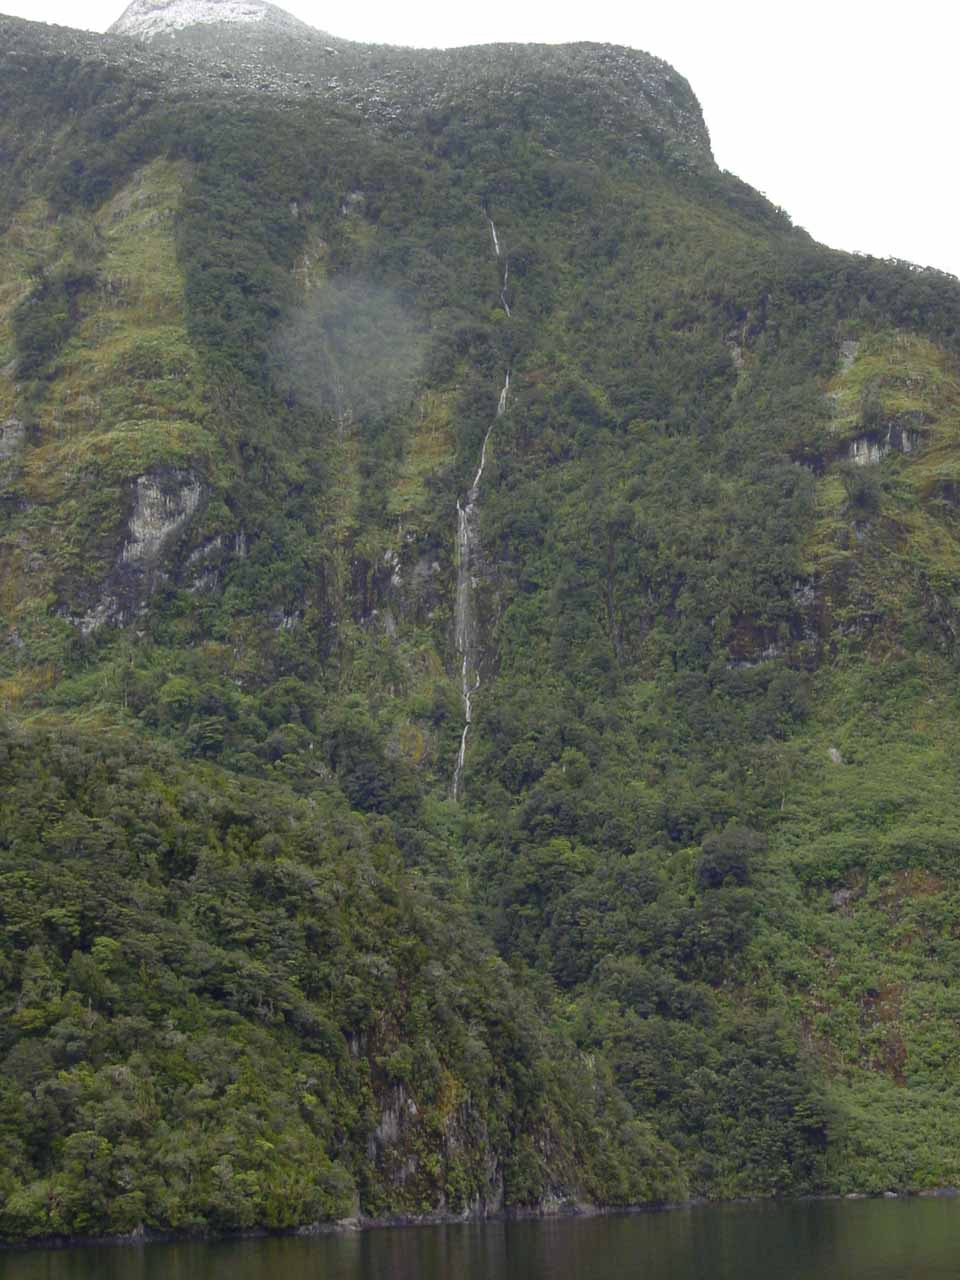 One of the thin ephemeral waterfalls feeding the Doubtful Sound